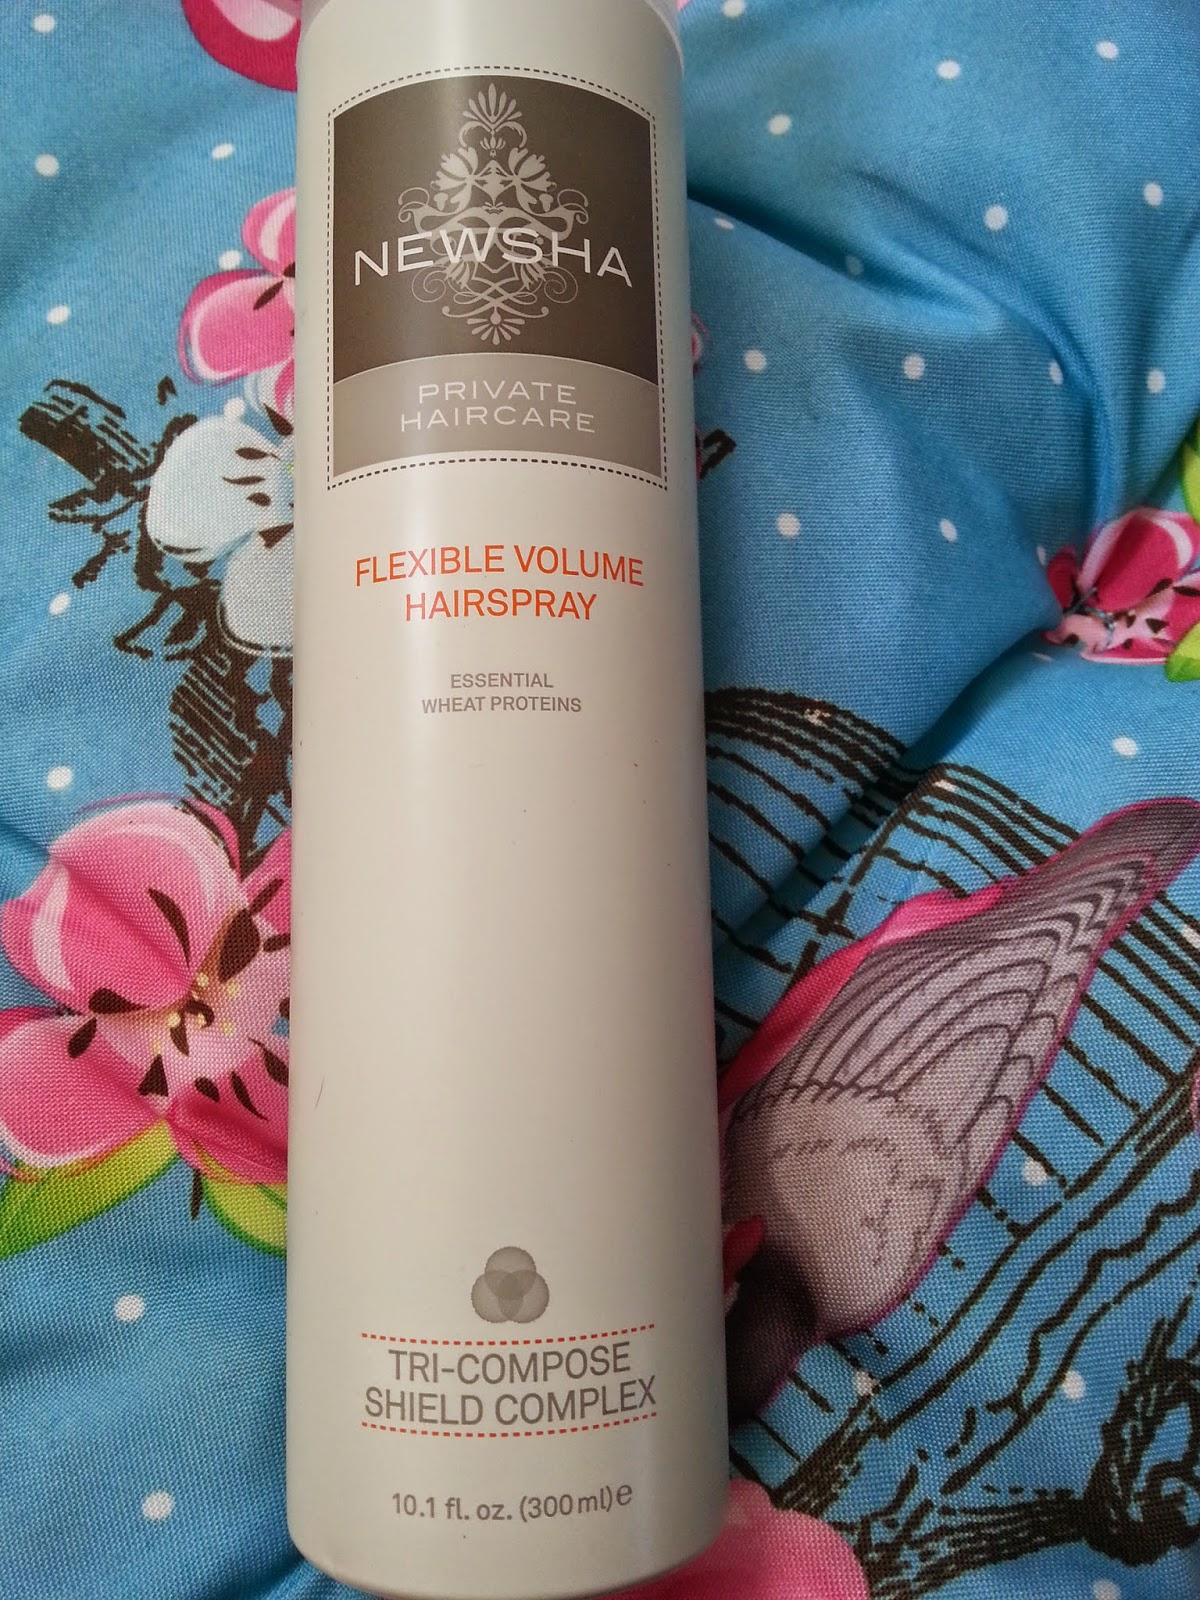 Newsha - Flexible Volume Hairspray - www.annitschkasblog.de